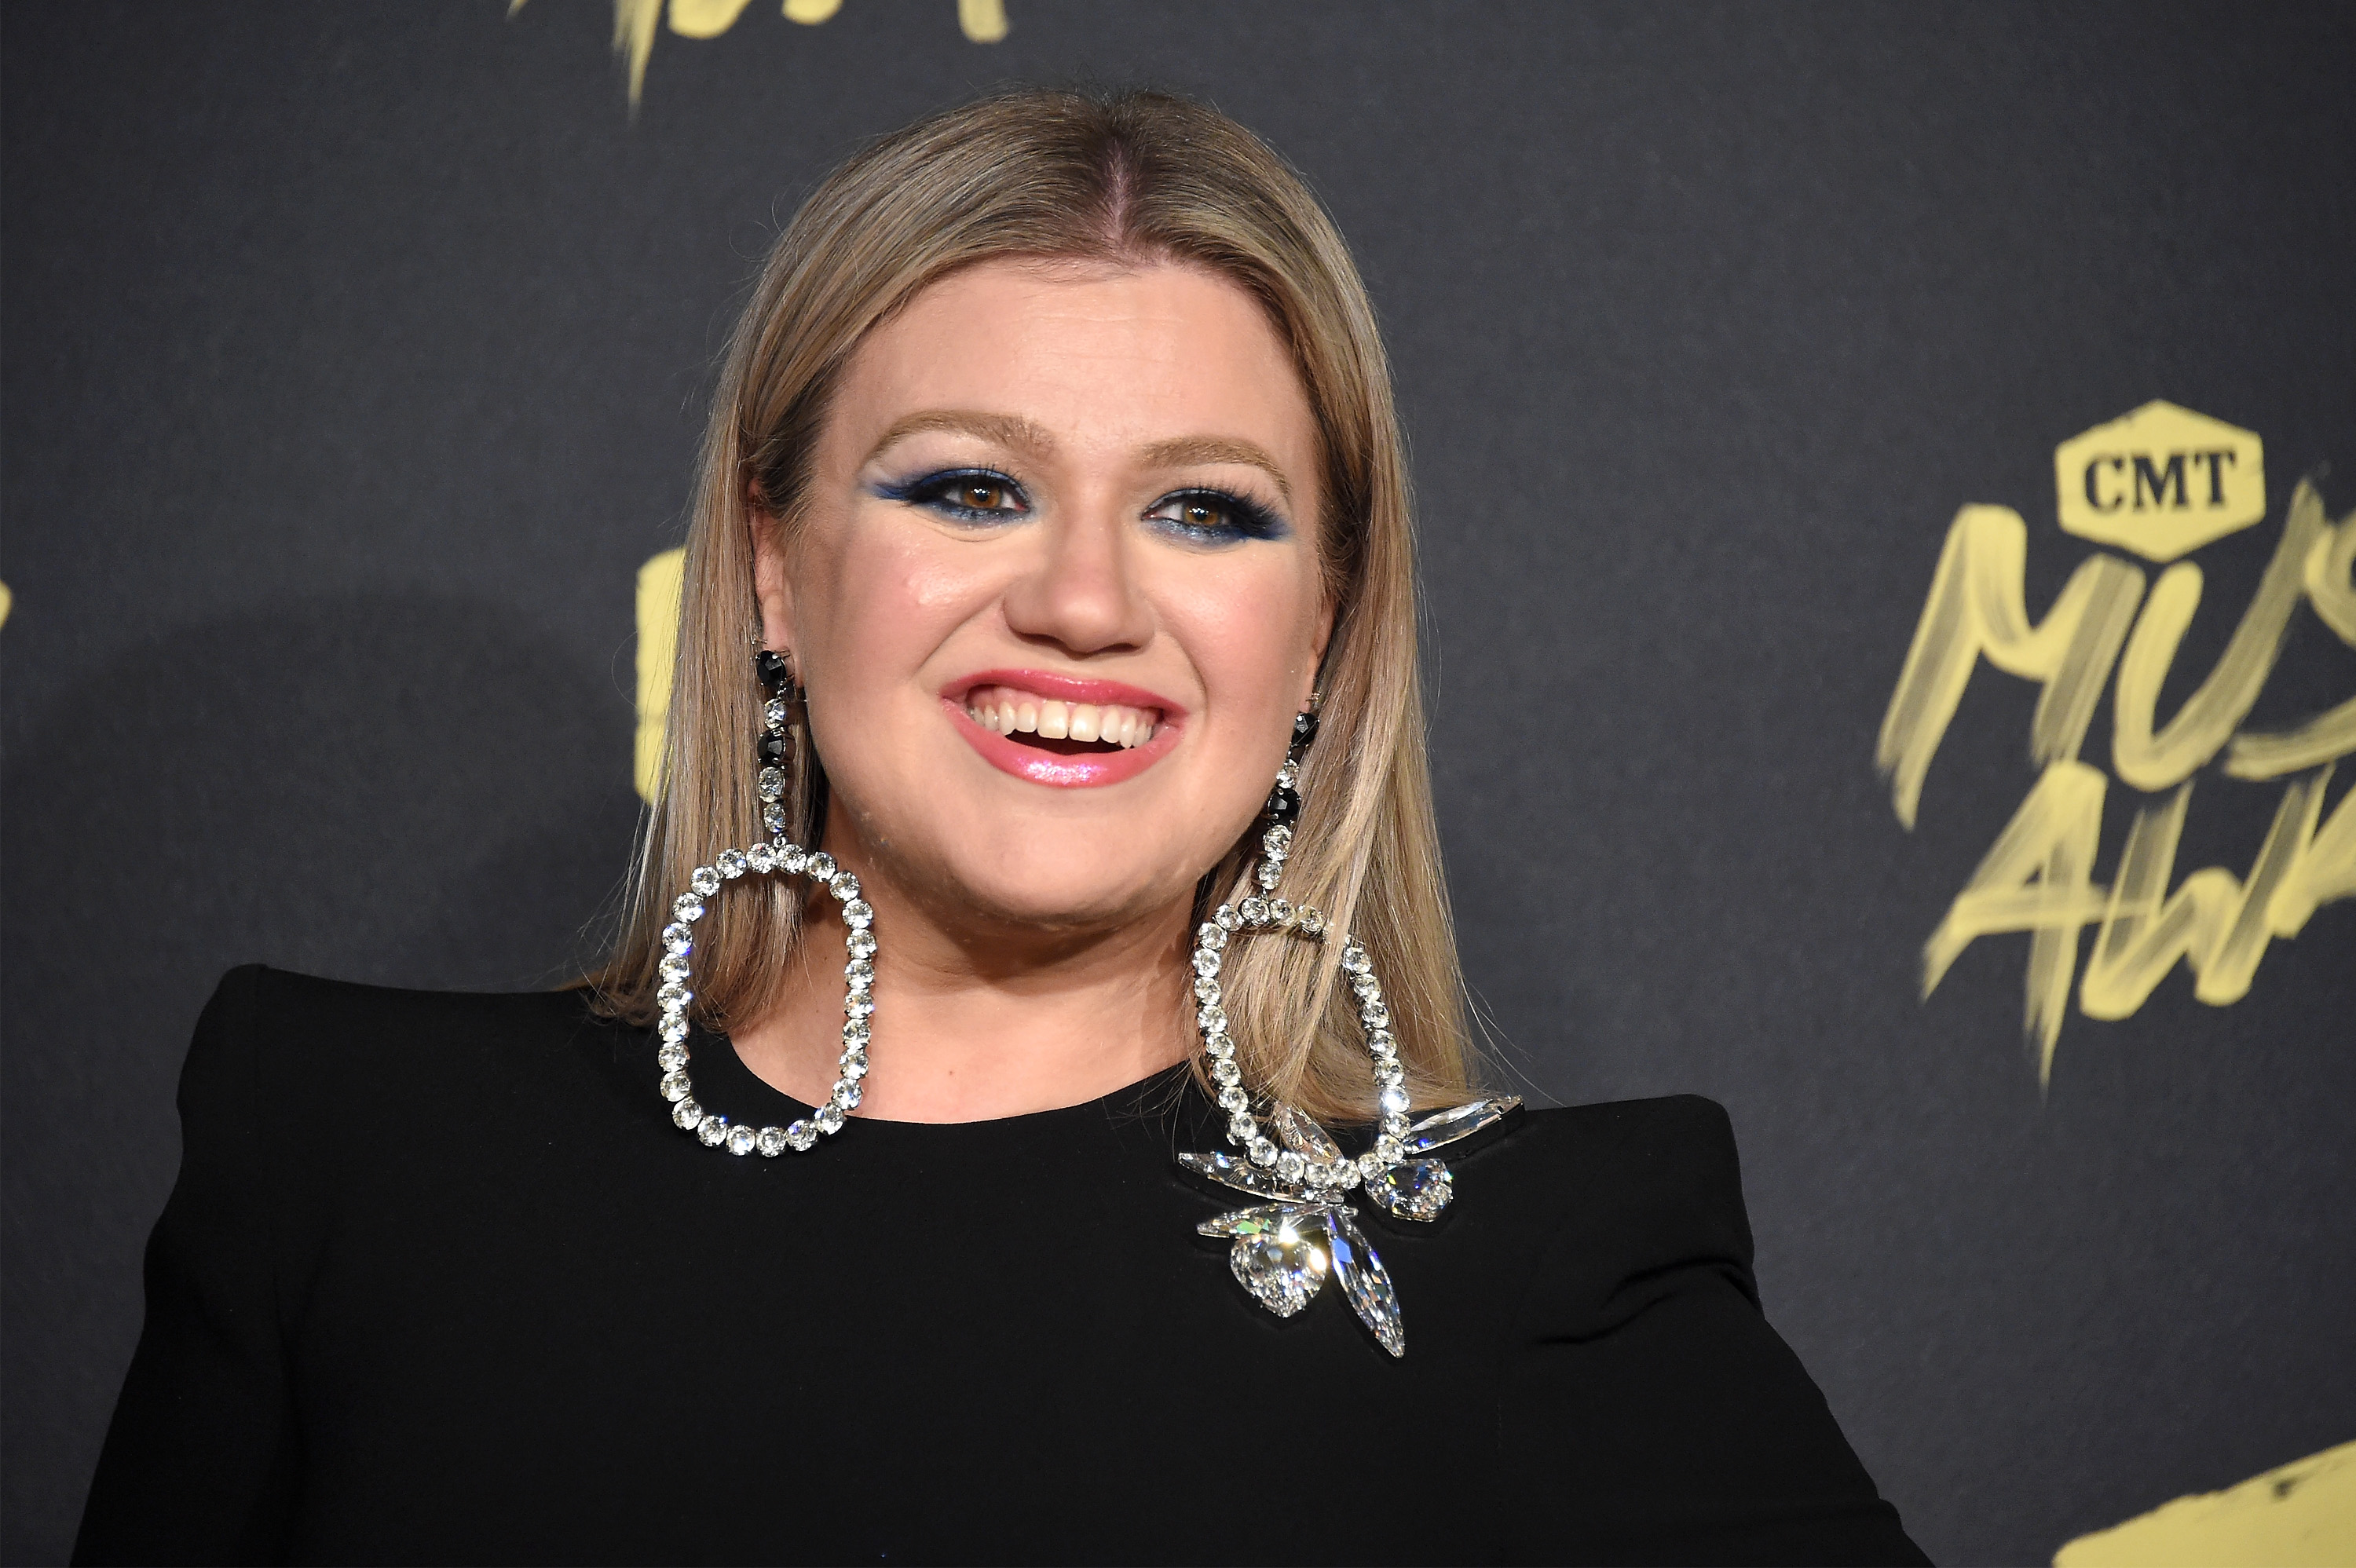 NASHVILLE, TN - JUNE 06: Kelly Clarkson attends the 2018 CMT Music Awards at Bridgestone Arena on June 6, 2018 in Nashville, Tennessee. (Photo by Mike Coppola/Getty Images for CMT)